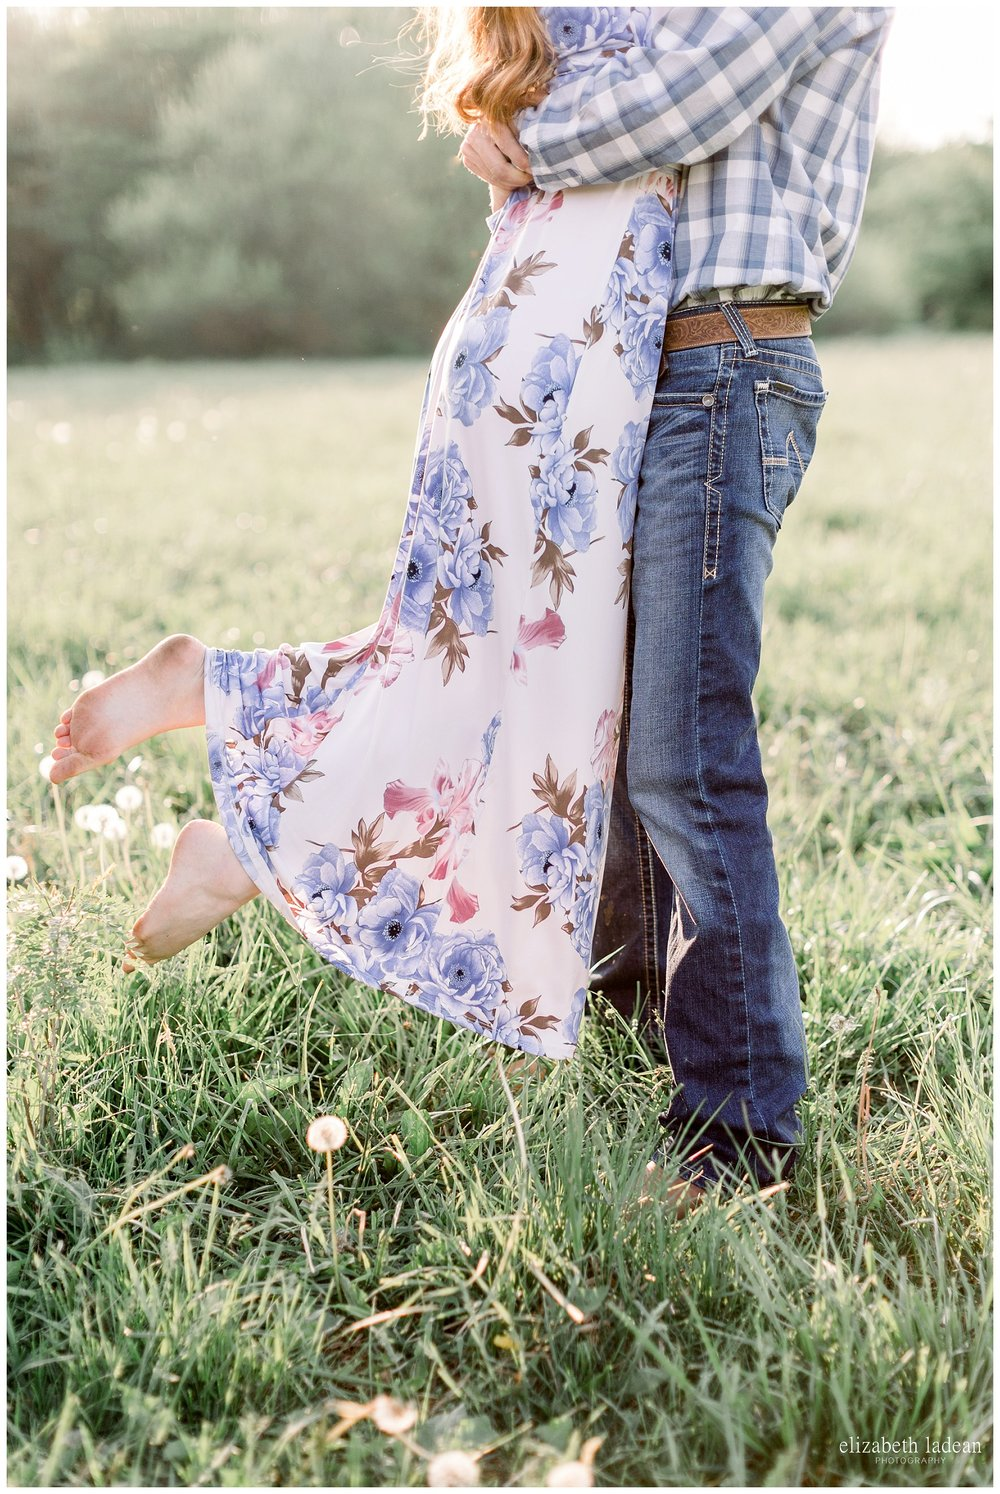 KC-Engagement-photographer-Farm-engagement-T+J-elizabeth-ladean-photography-photo-_7353.jpg